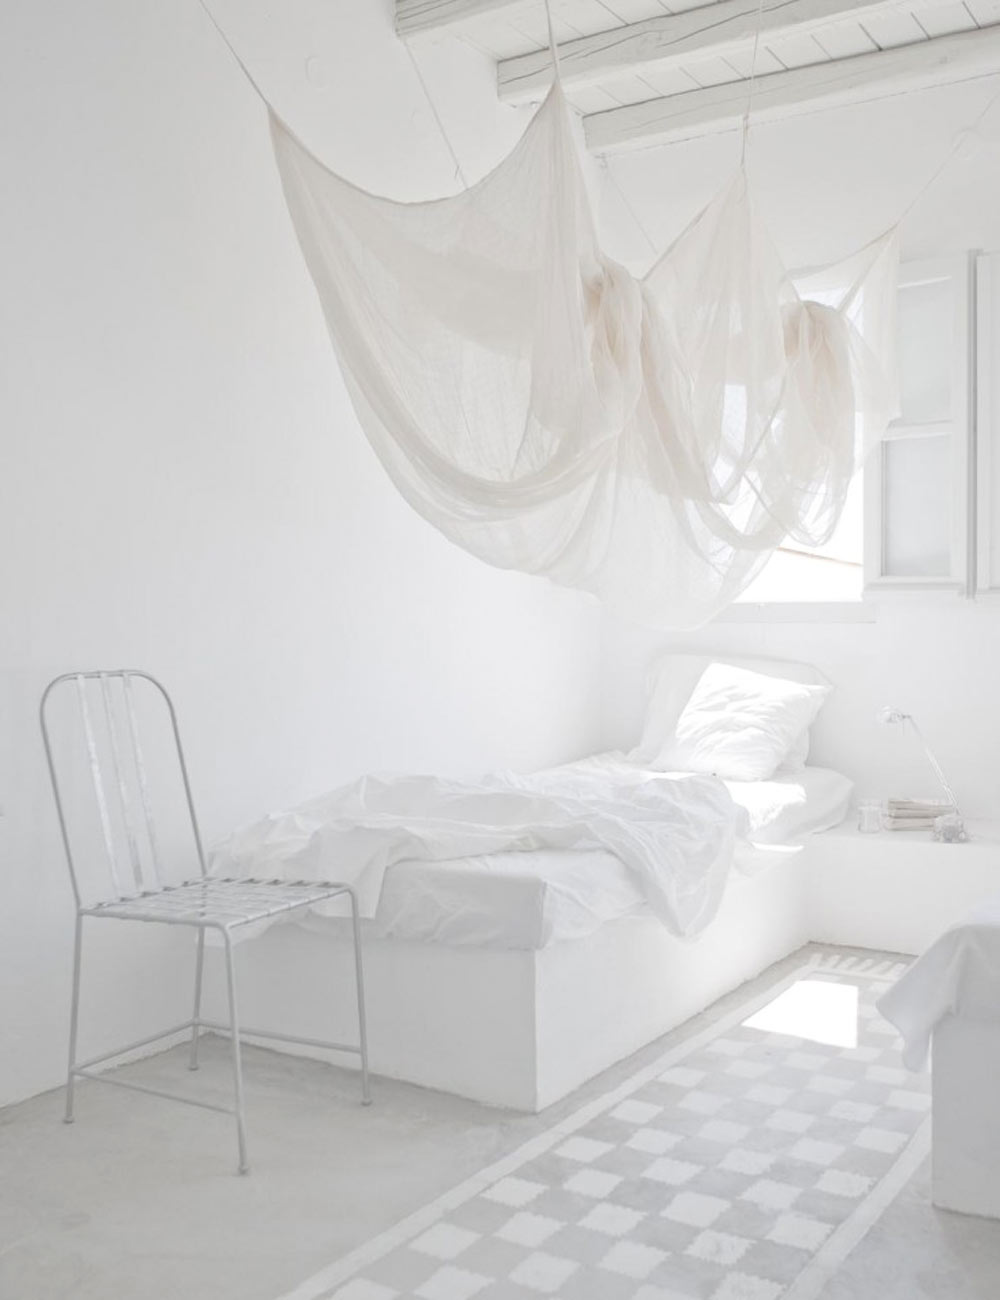 Oracle, Fox, Sunday, Sanctuary, White, Out, White, Interiors, Window, white, bedroom